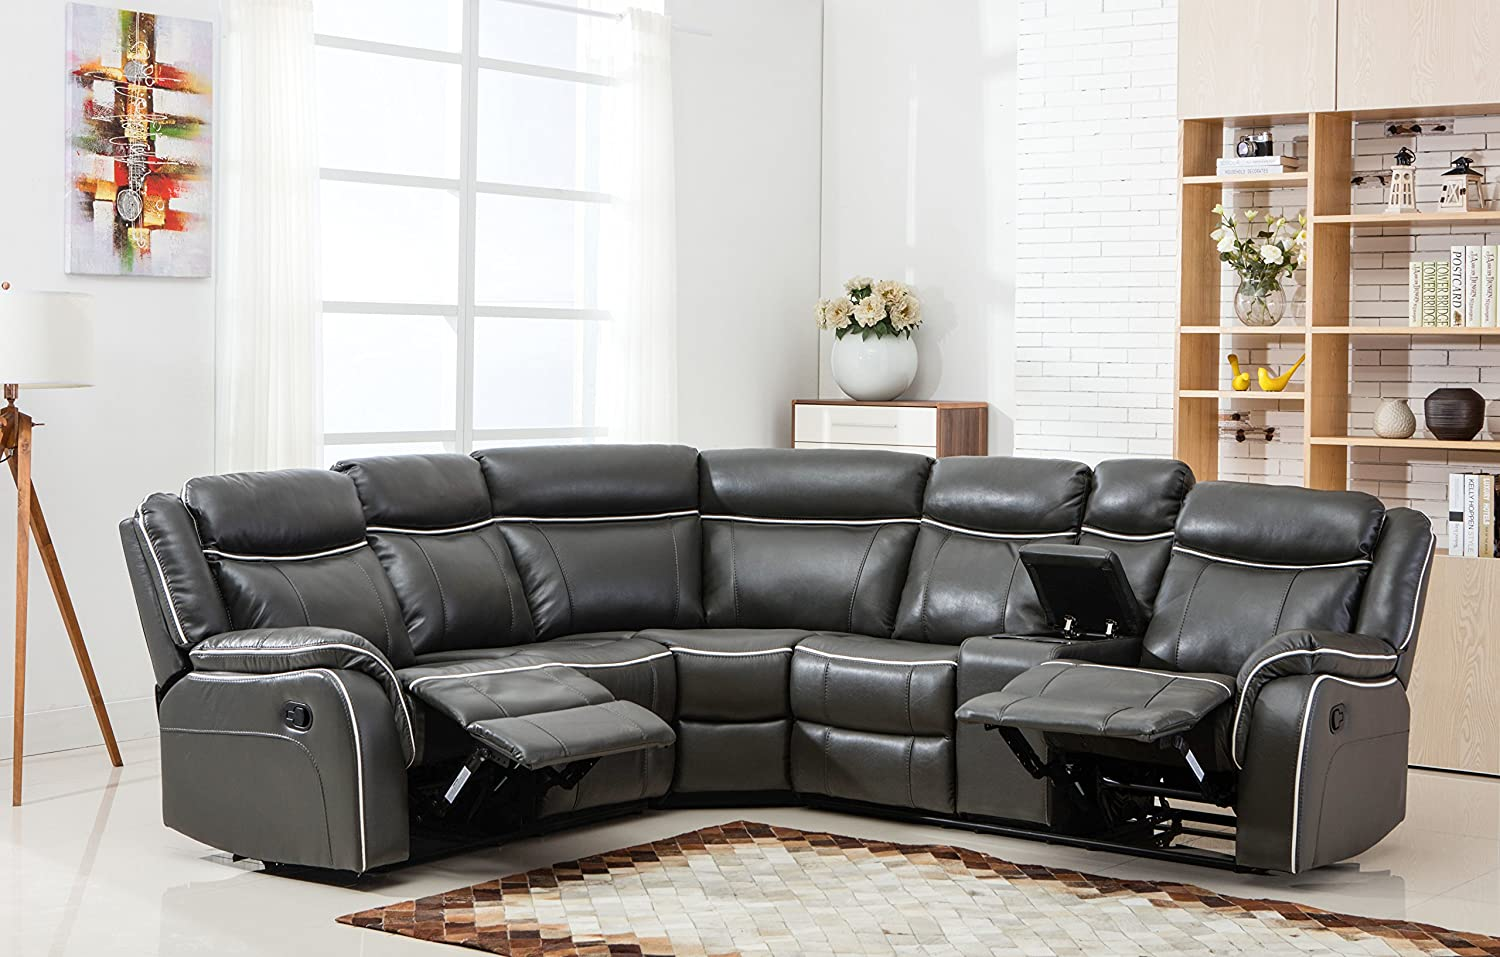 Beau Amazon.com: Large Classic And Traditional Two Tone Bonded Leather Reclining Corner  Sectional Sofa (Grey): Kitchen U0026 Dining